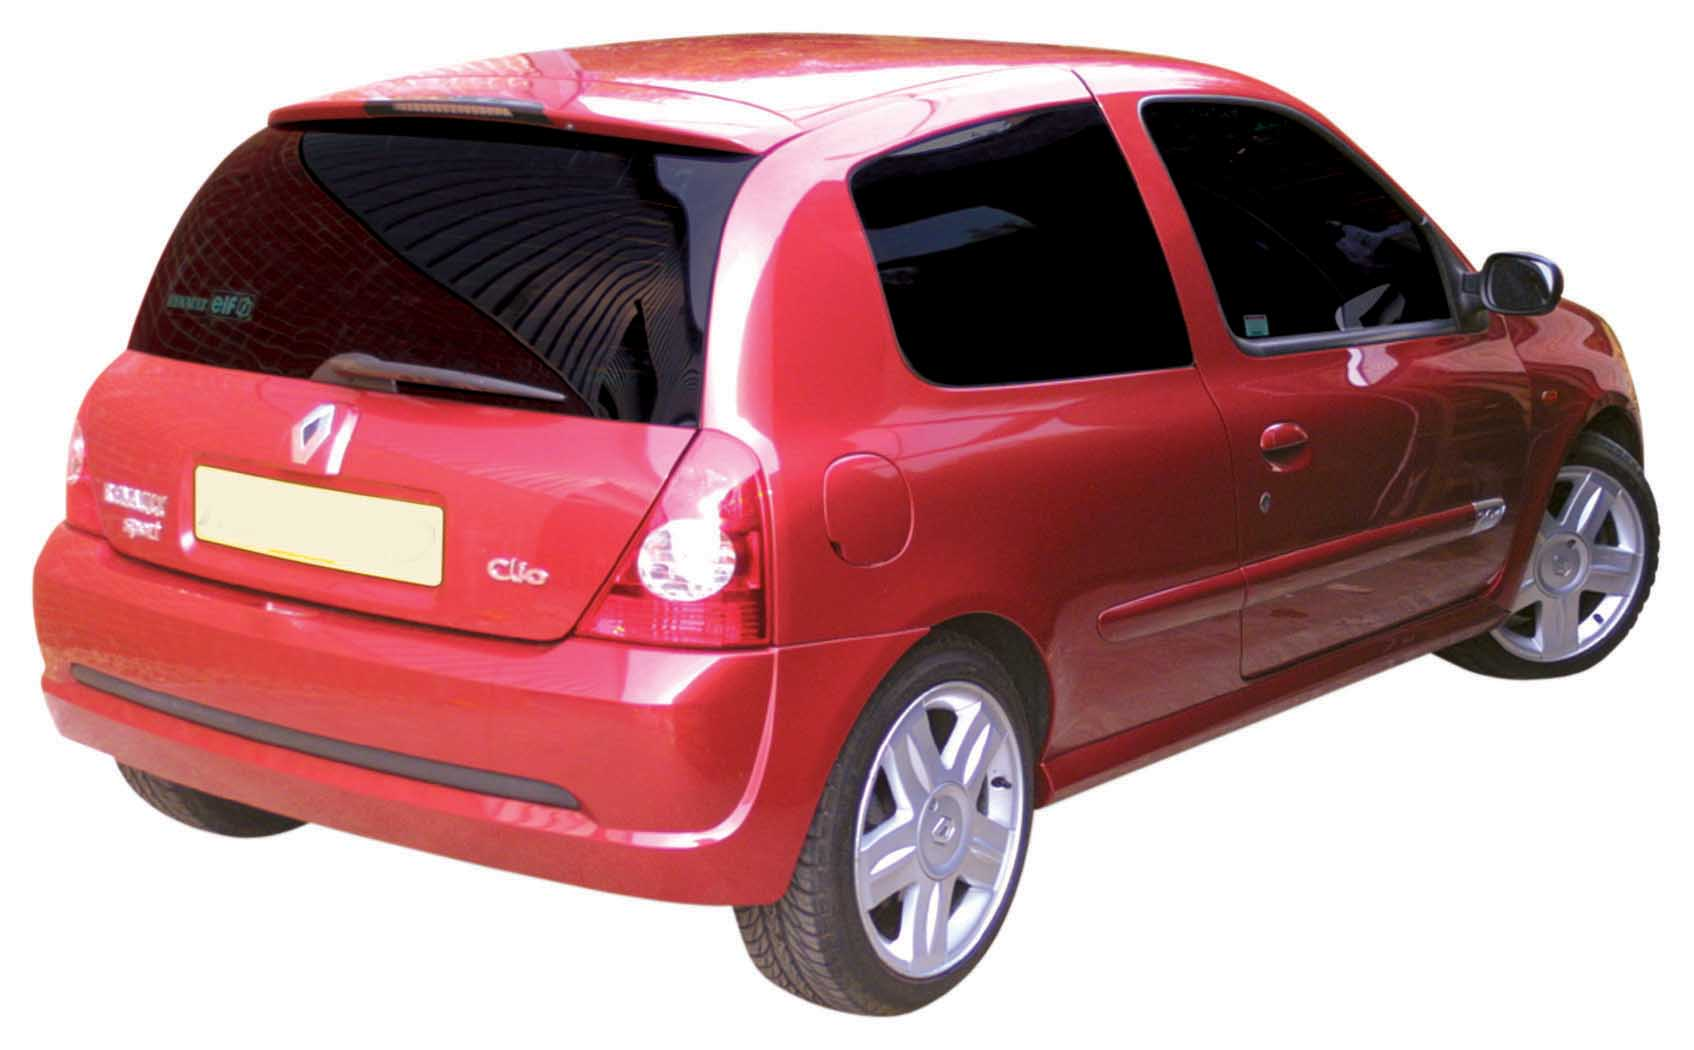 Limo Tint Film http://www.ebay.co.uk/itm/Car-Defender-Window-Tint-Film-Limo-Black-Self-Adhesive-76cm-x-152cm-A135-/260997514168